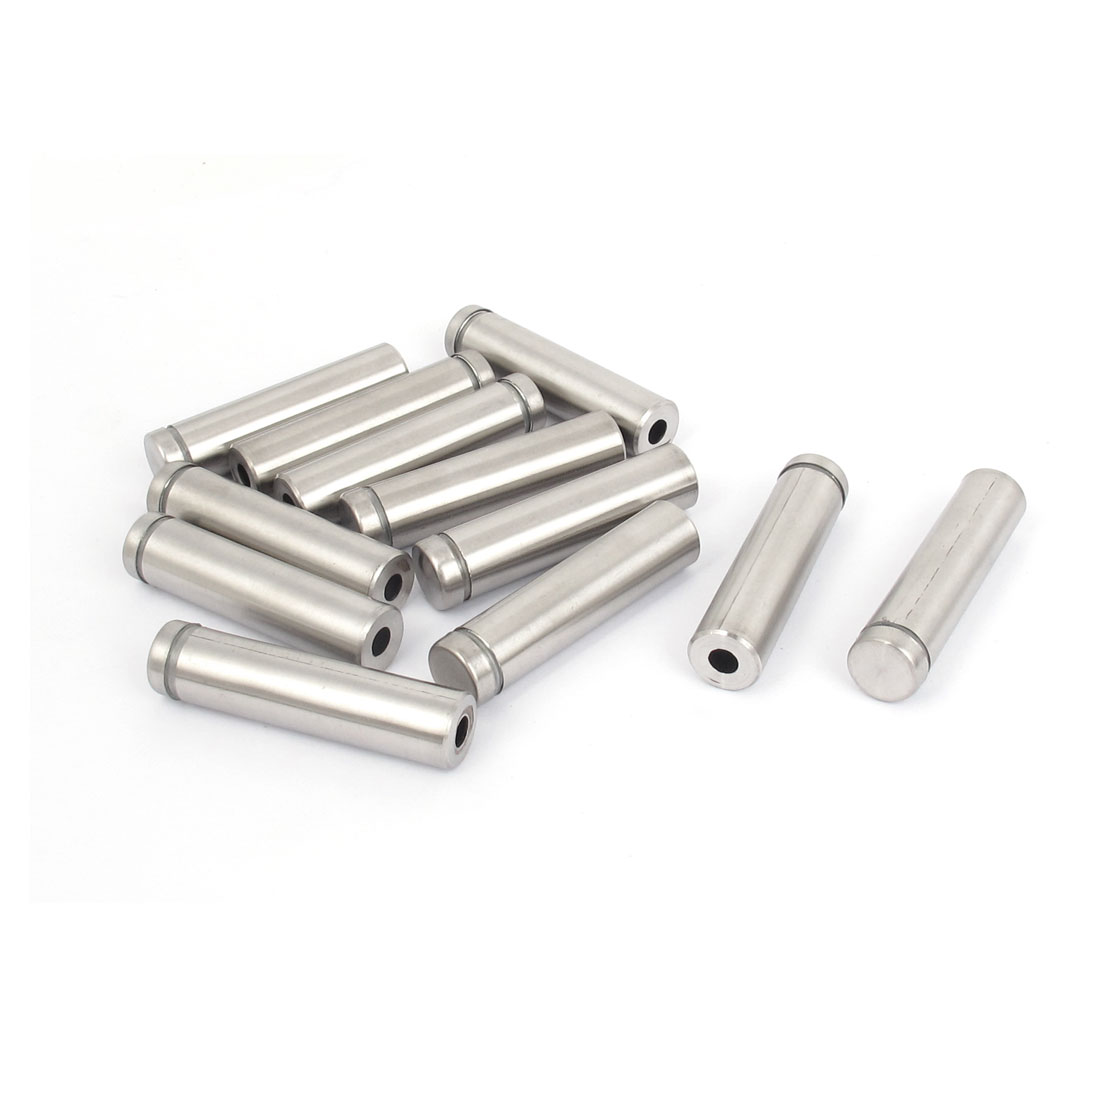 12mm x 50mm Stainless Steel Advertising Frameless Glass Standoff Pins 12pcs